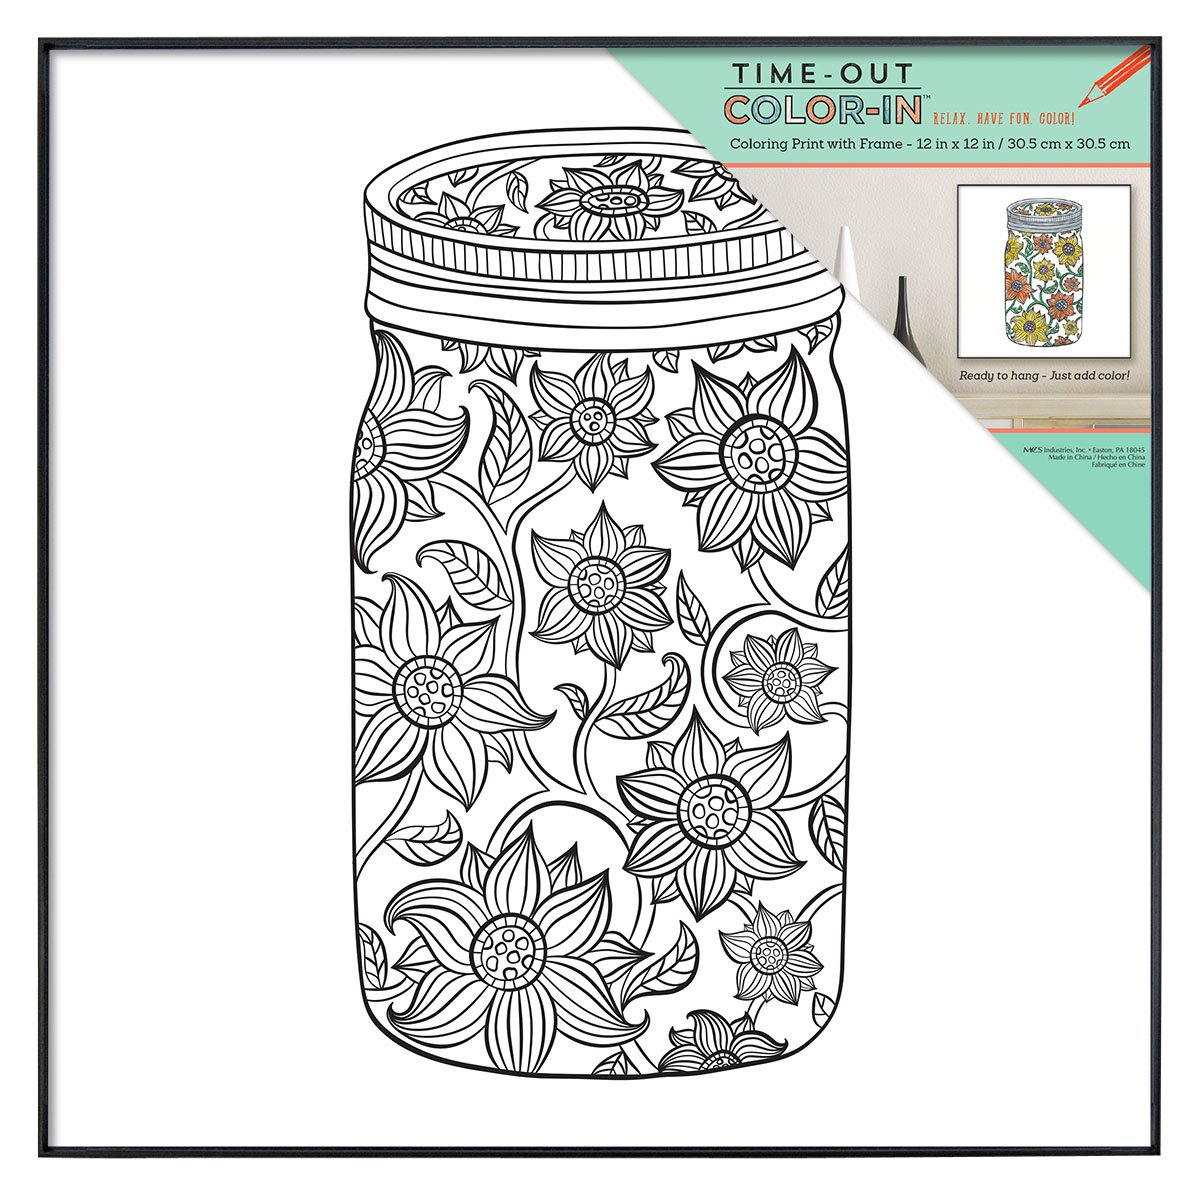 mcs time out color in 12x12 inch framed adult coloring with design and at desertcart coloring pages Mason Jar Coloring Page